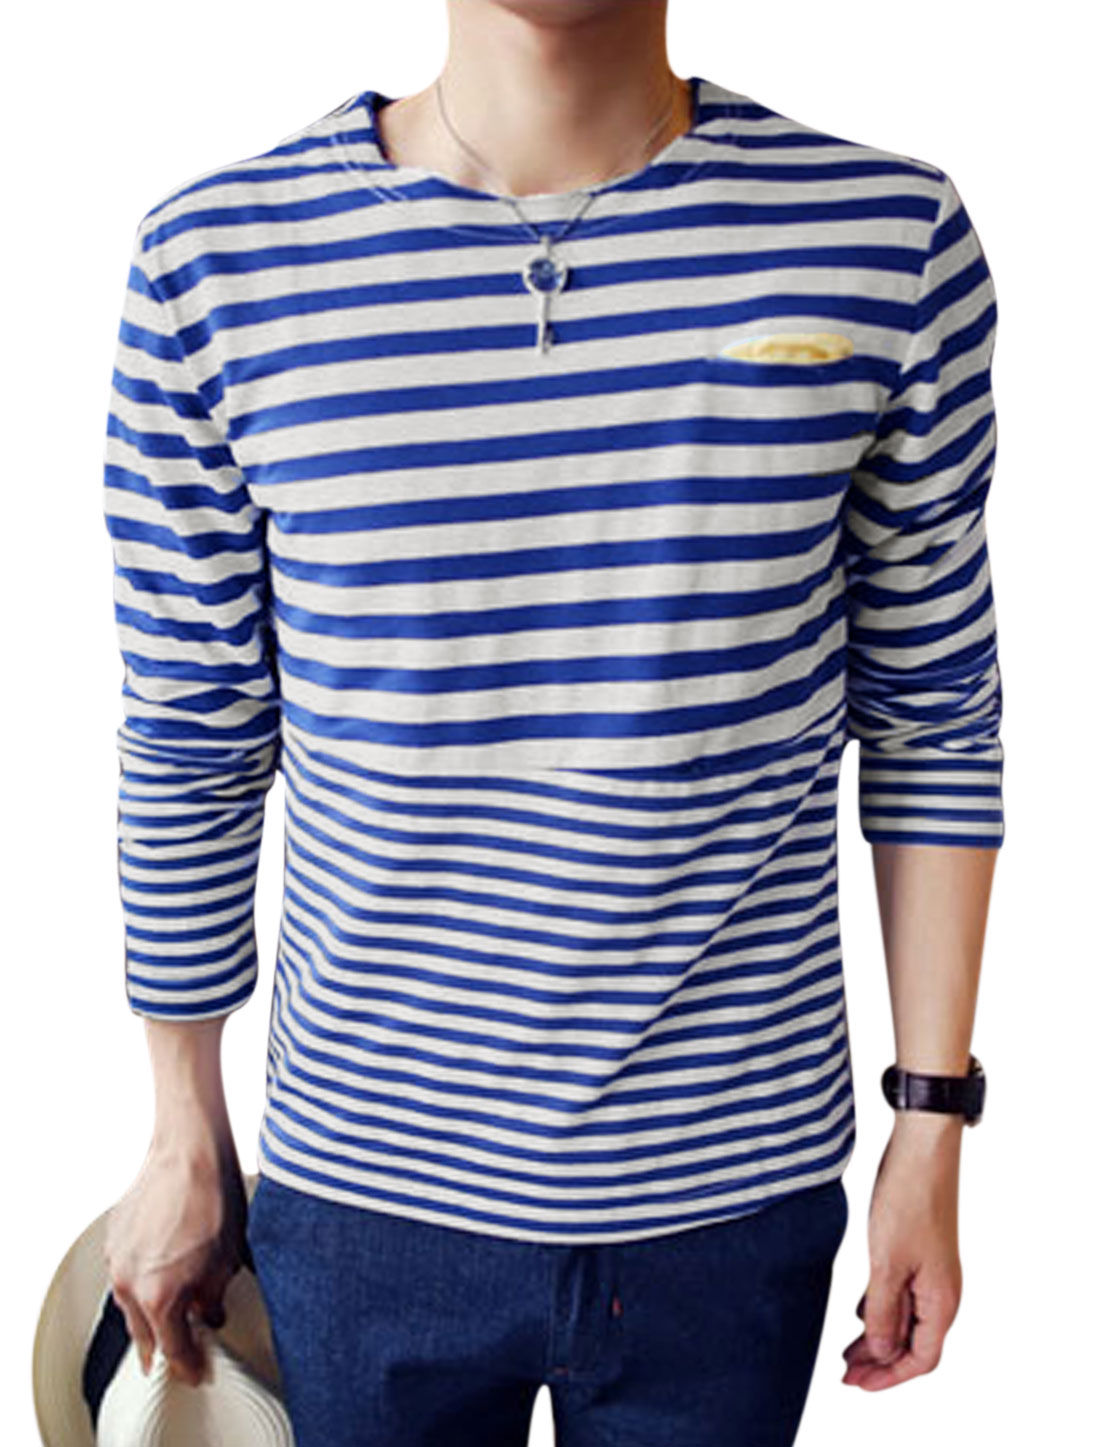 Men Stripes Pattern One Pocket Chest Casual Top Shirt Blue White M